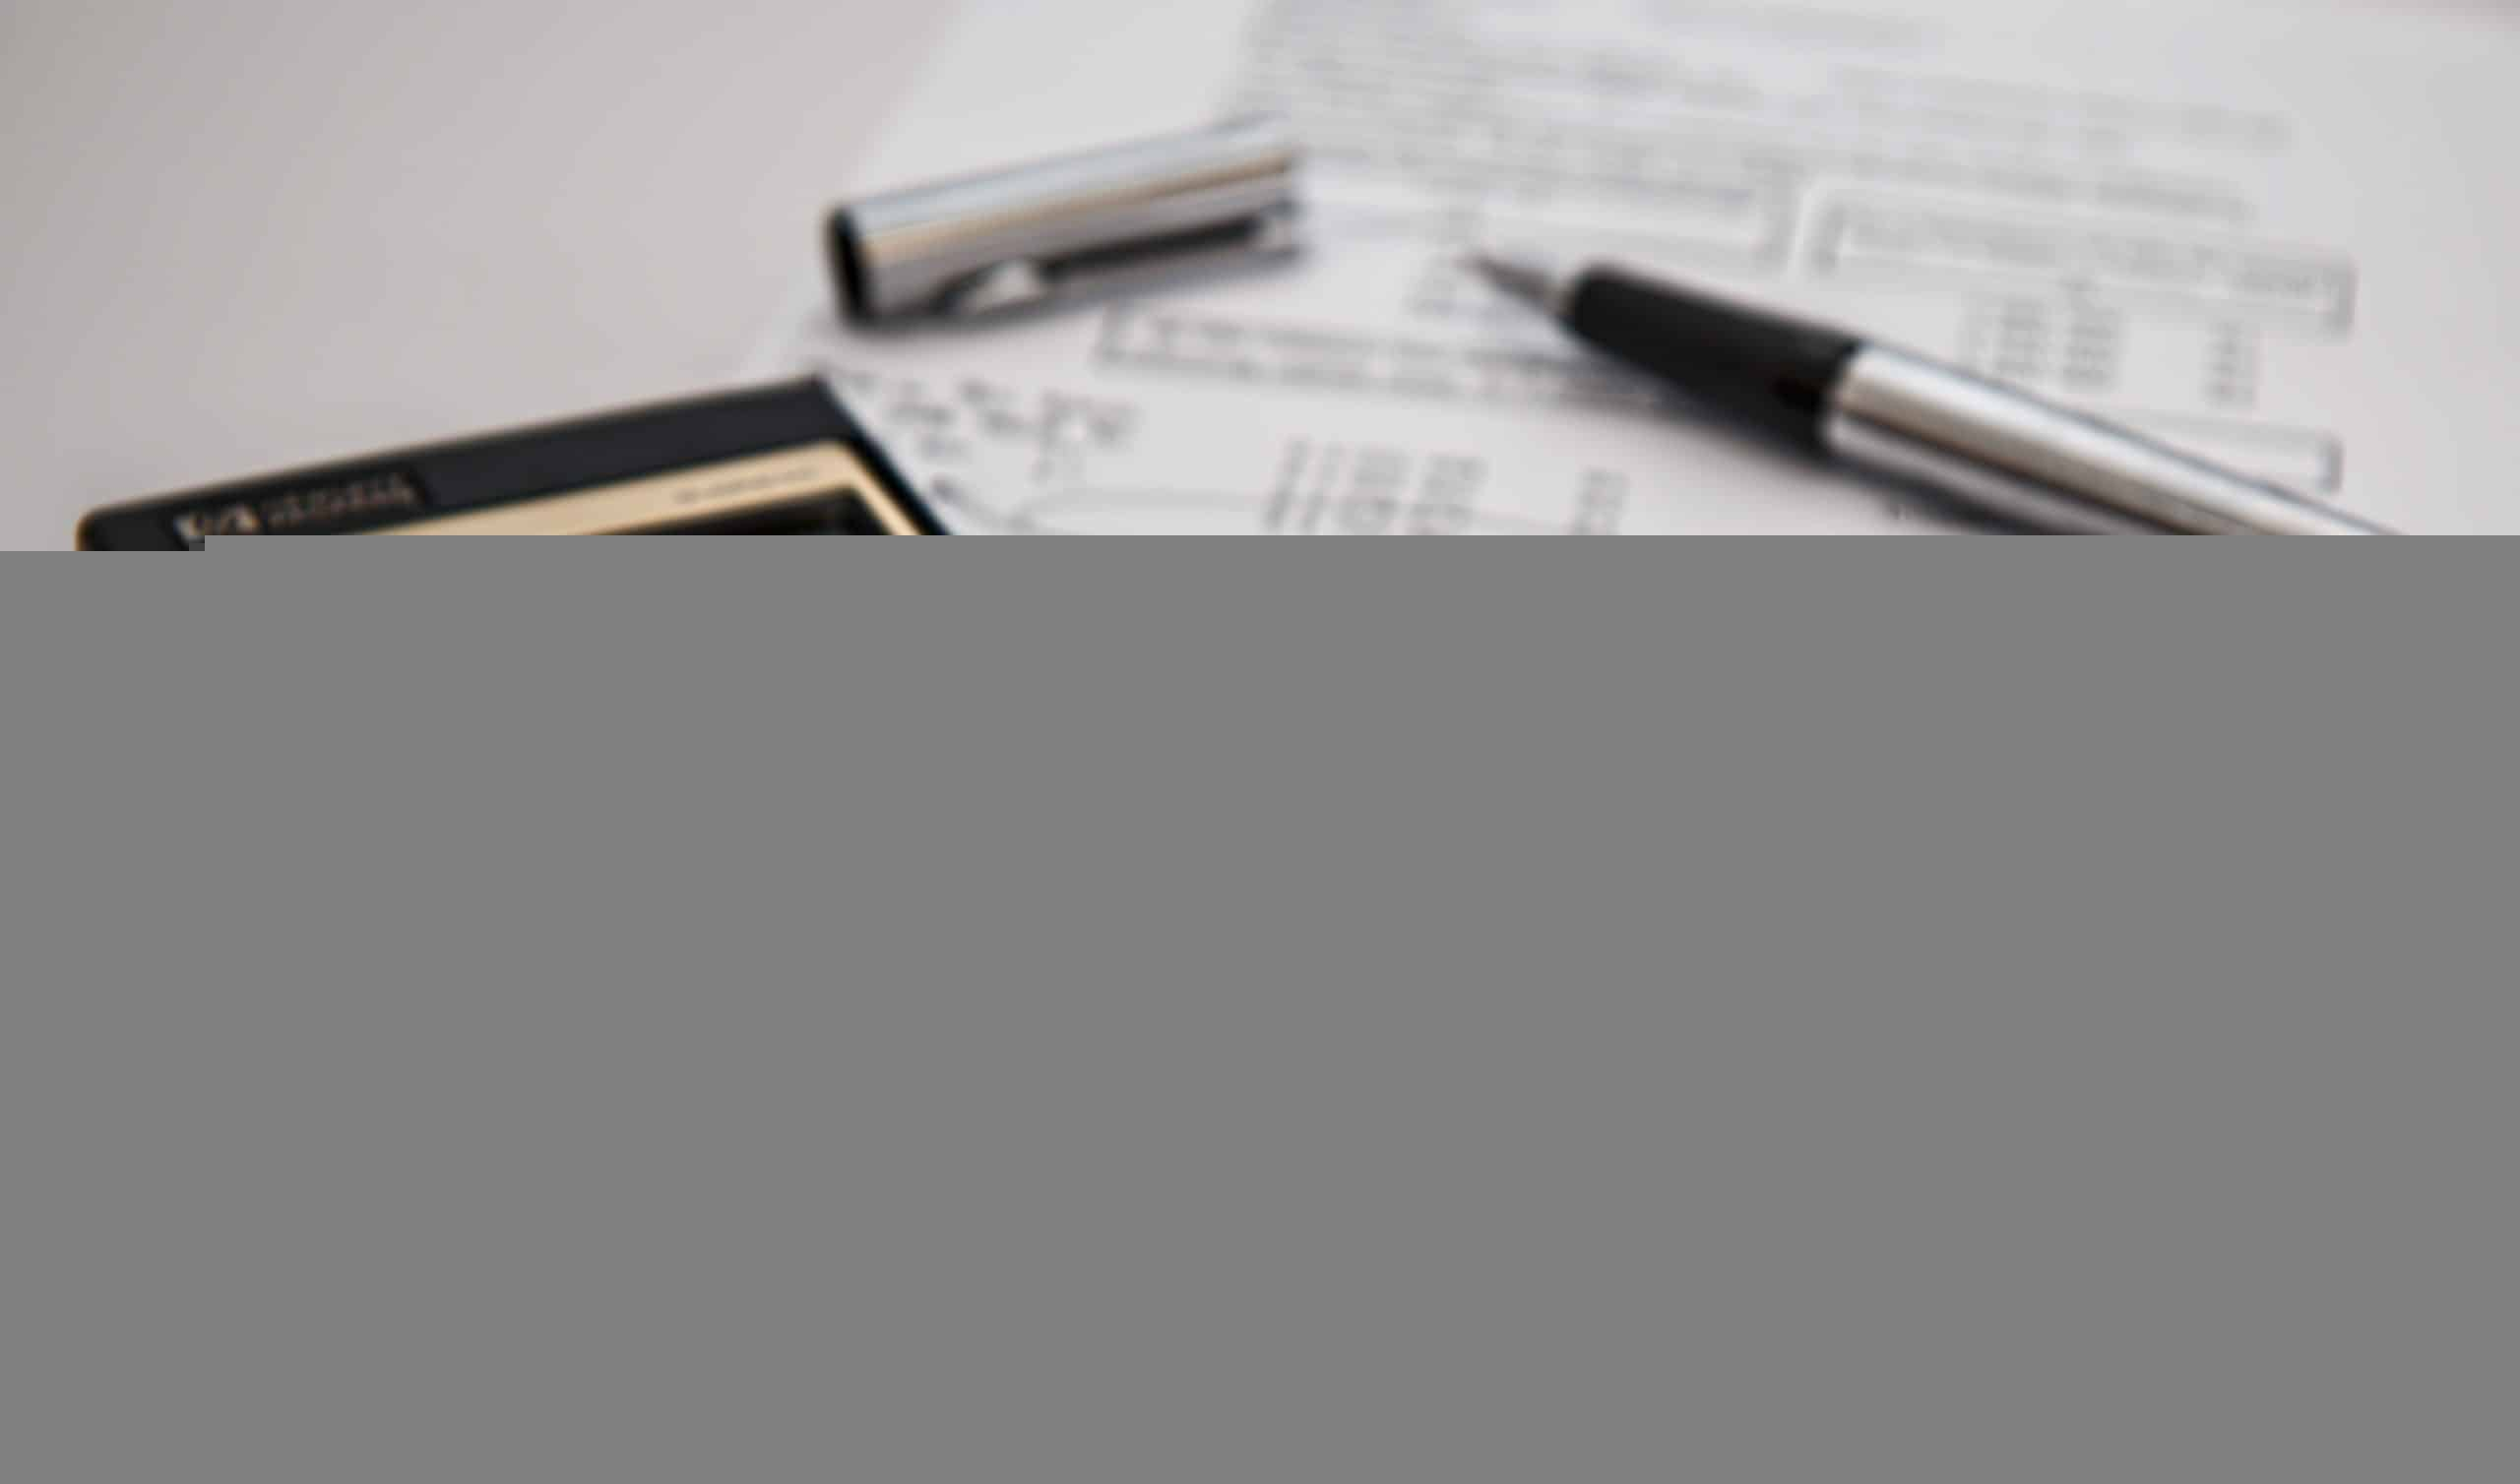 photo of finance sheet with a pen and calculator